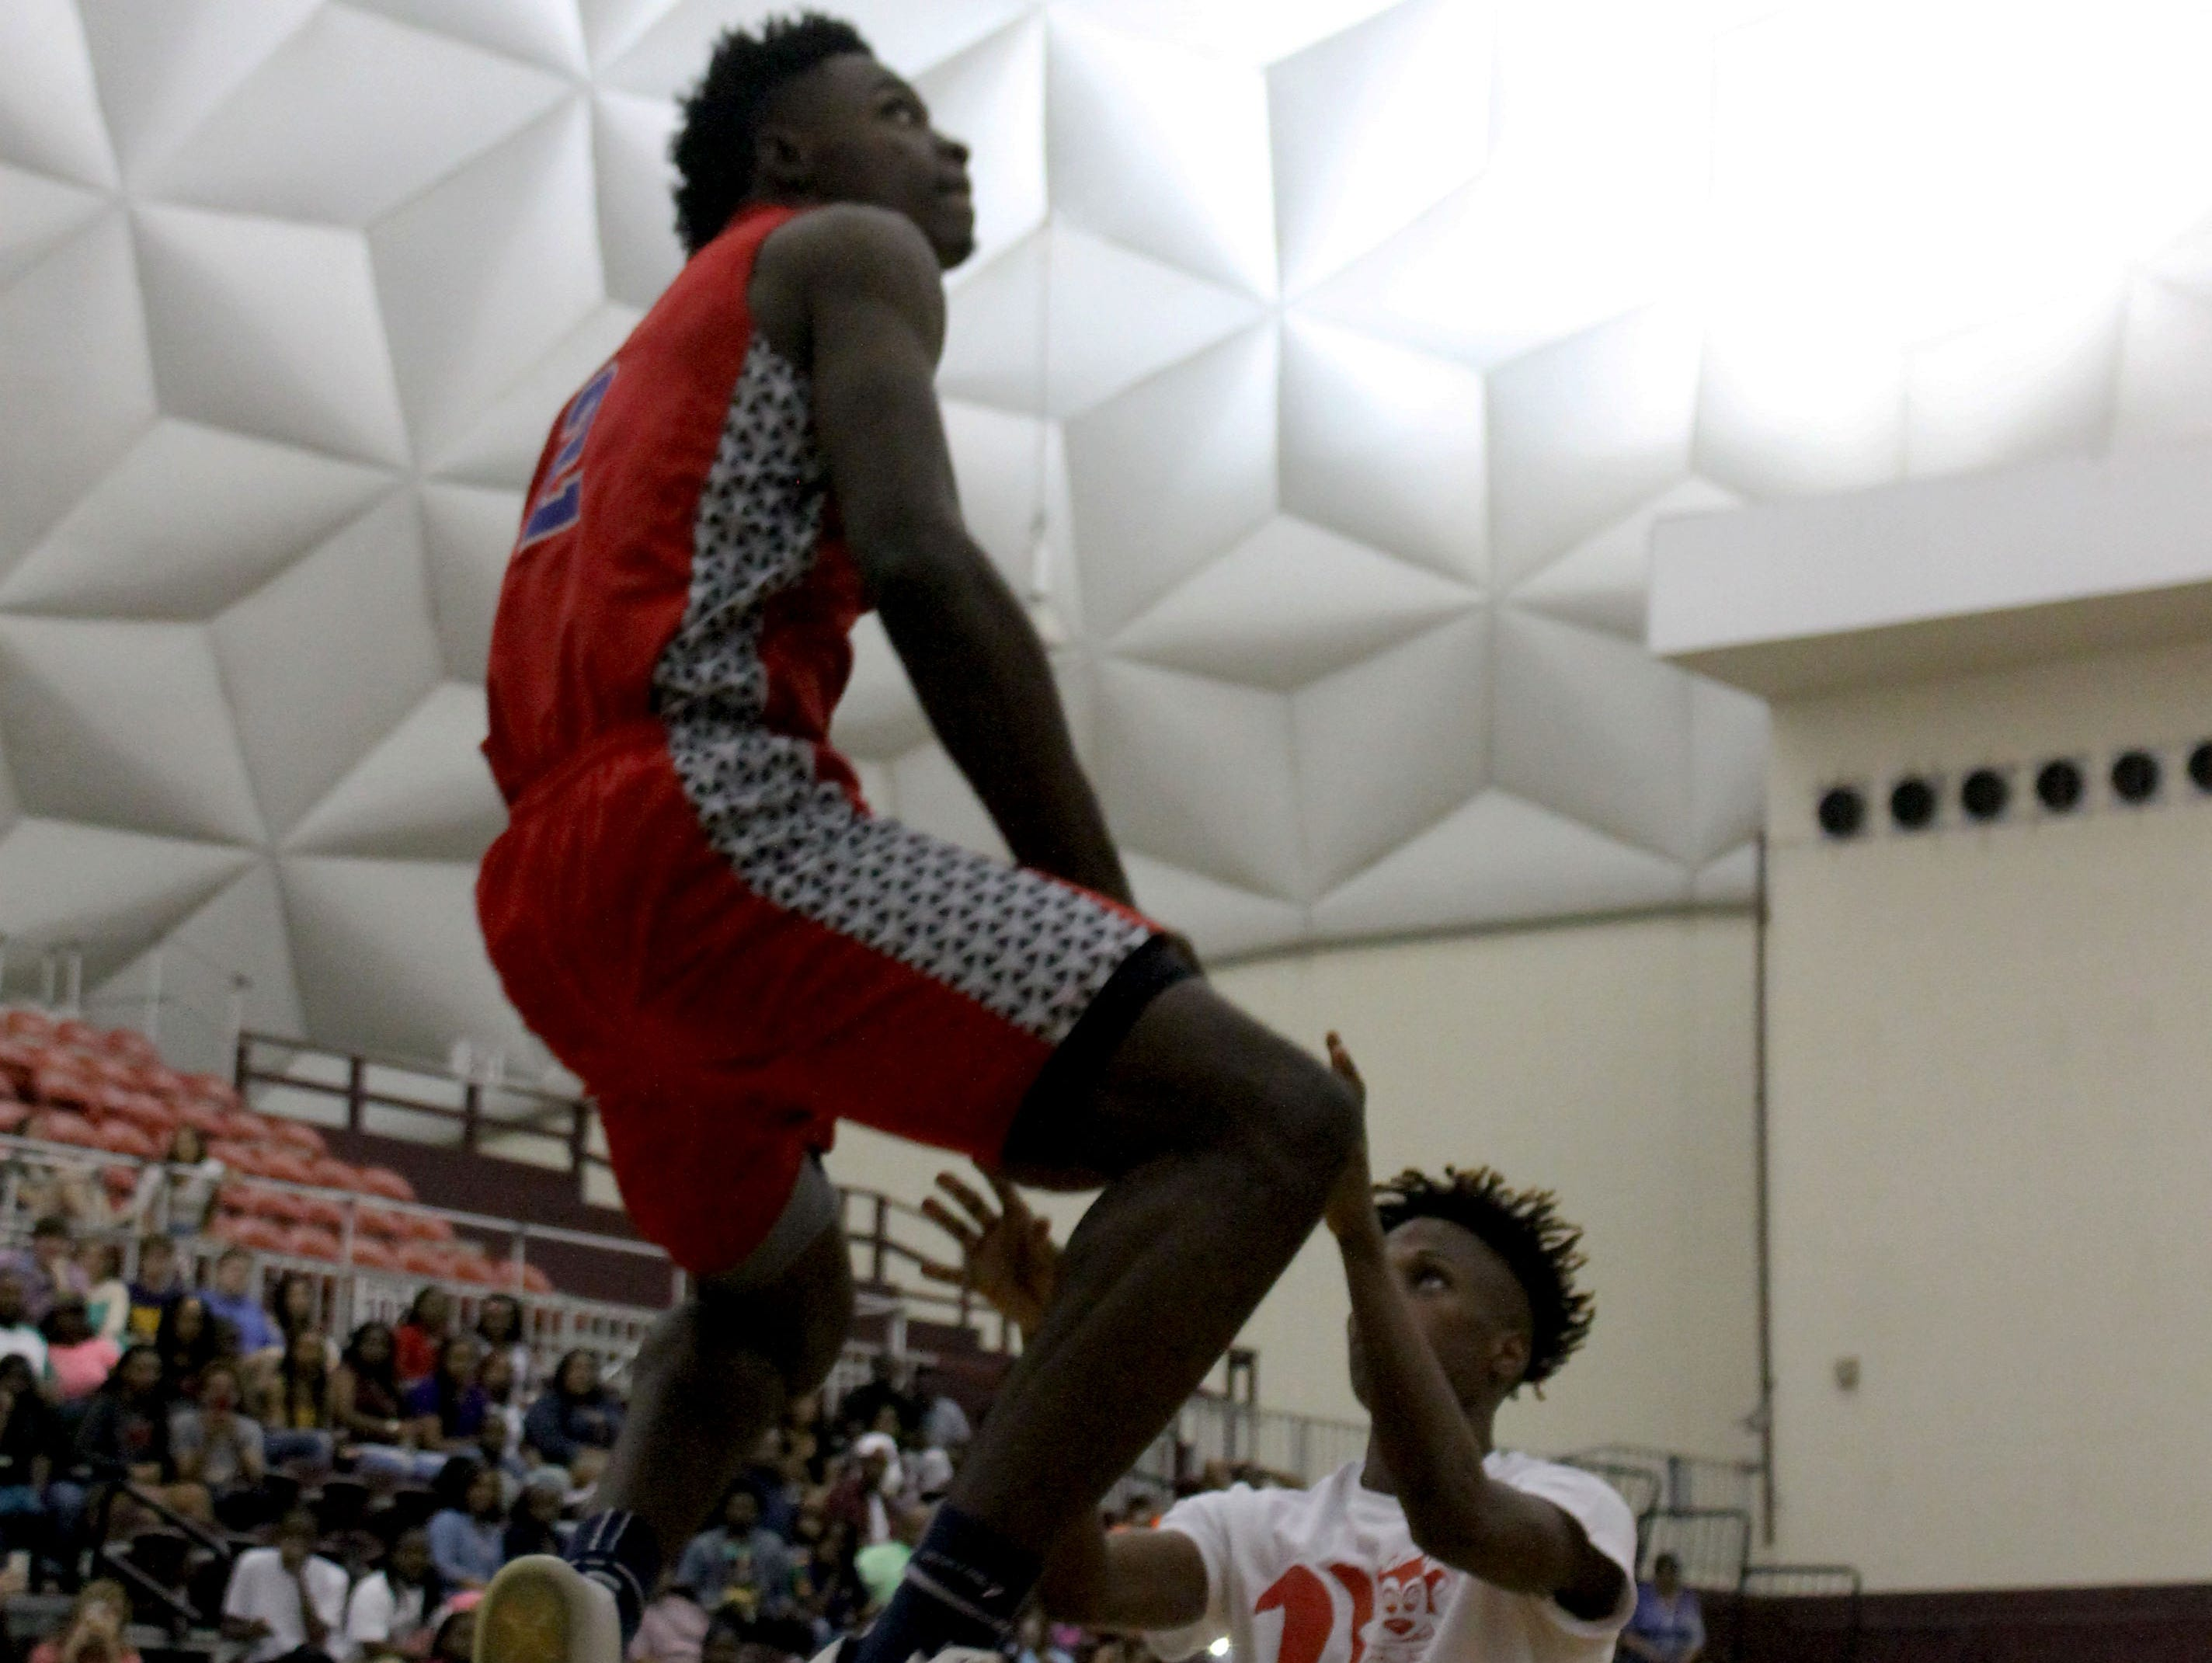 Lakeview senior Adrio Bailey goes up for a dunk during the dunk contest at Saturday's I-20 Classic All-Star game.